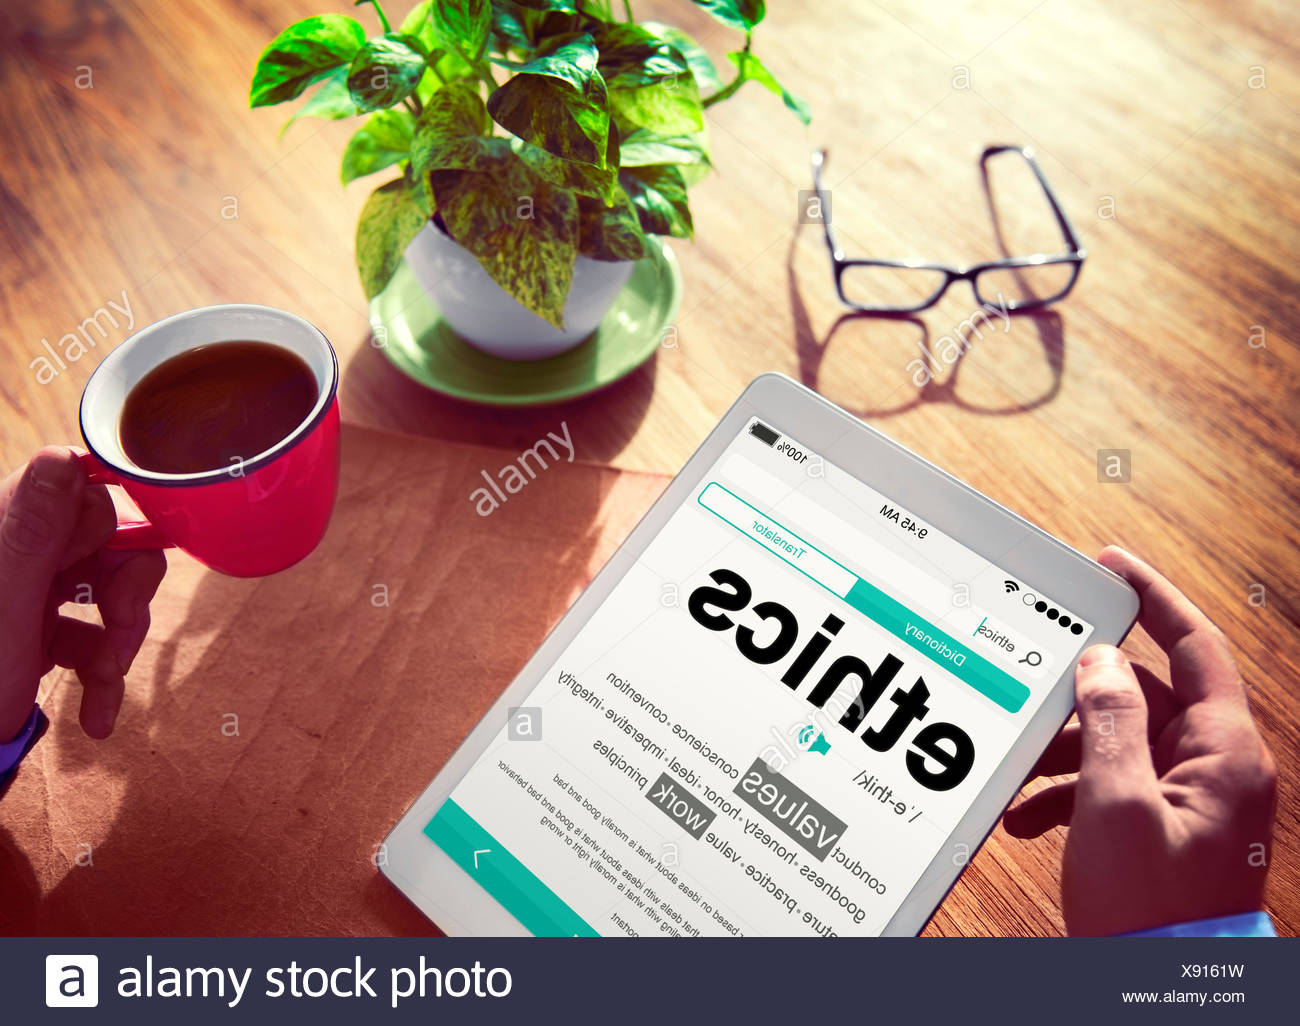 Man Reading the Definition of Ethics - Stock Image